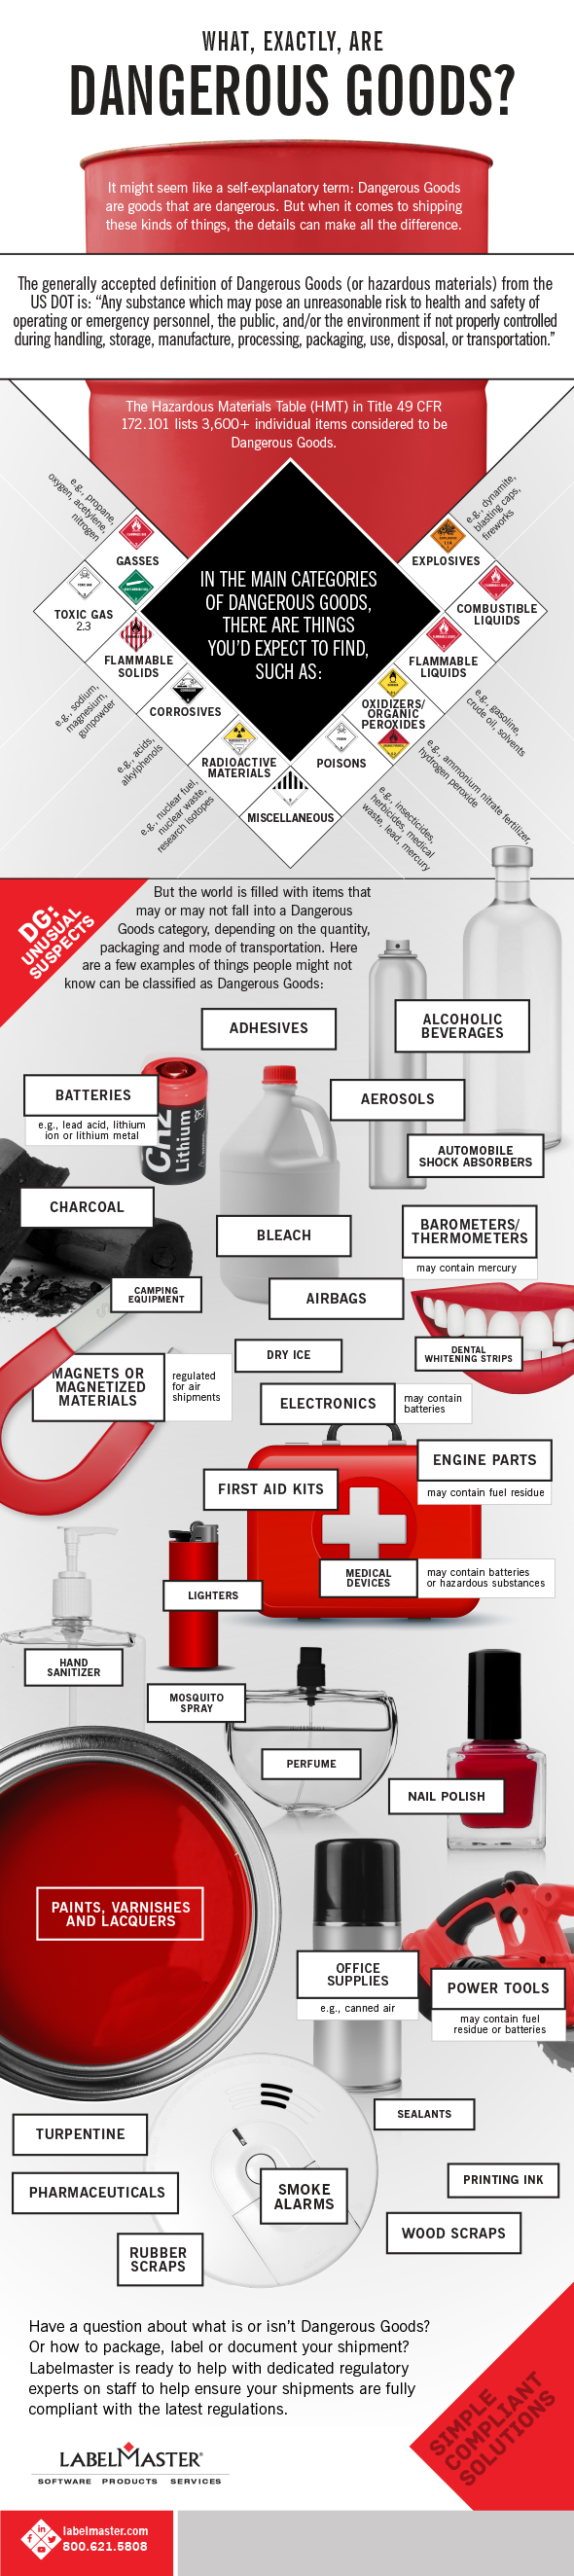 Infographic | What exactly are Dangerous Goods?